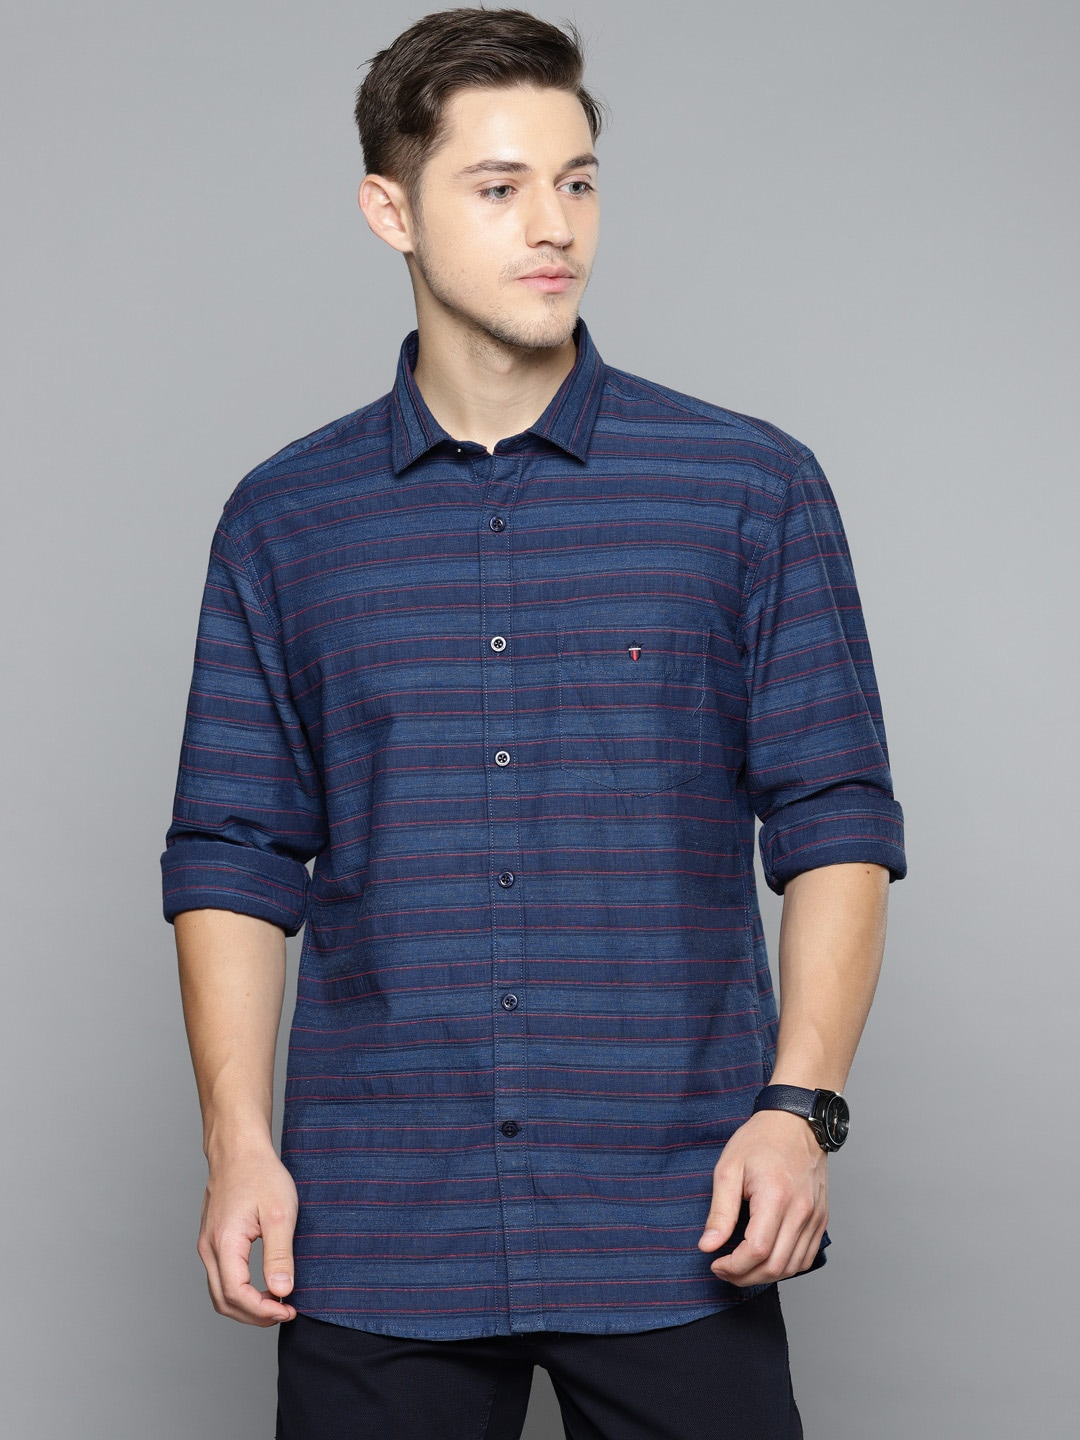 2eb5c840601 Stripe Shirt Men - Buy Stripe Shirt Men online in India